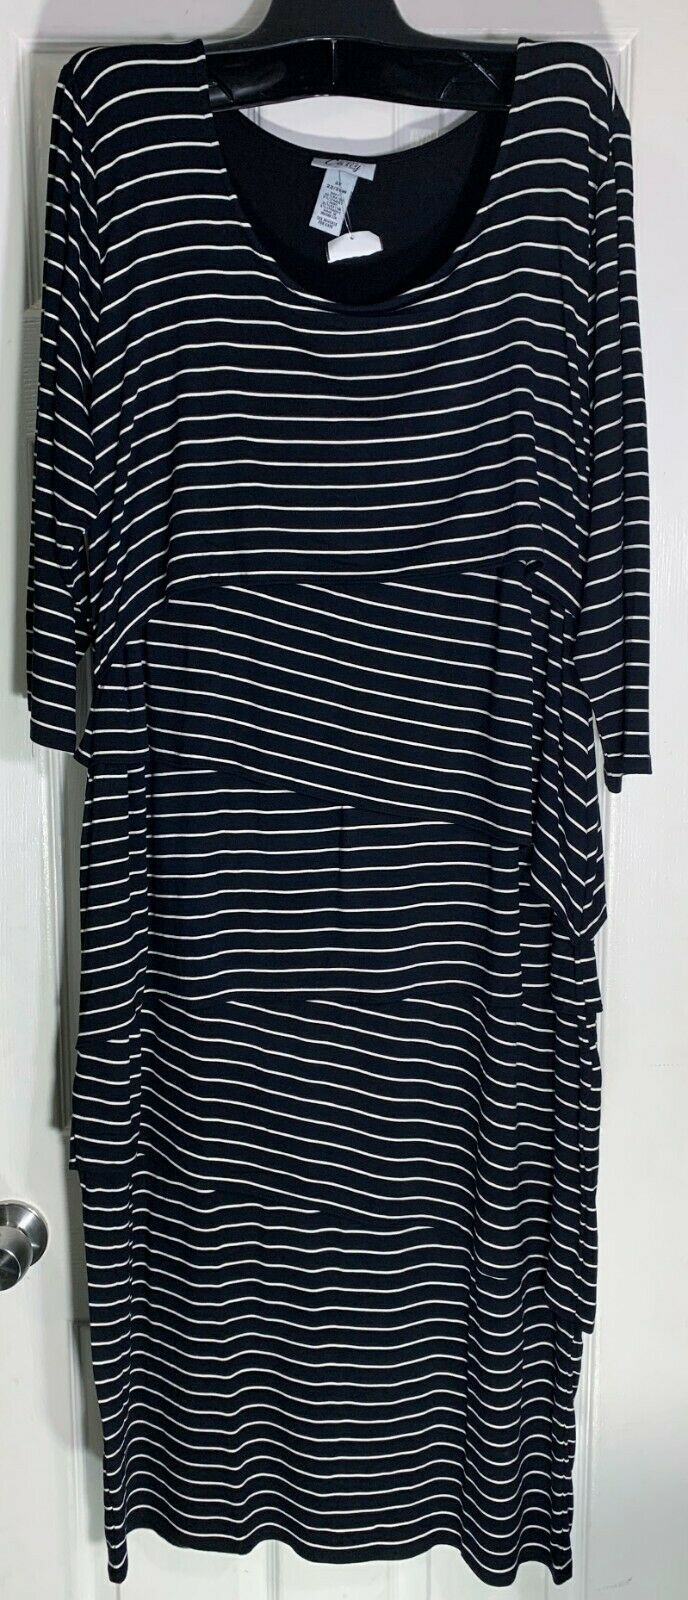 Primary image for CATHERINES WOMEN PLUS SIZE 5X TIERED LAYERS DRESS BLACK & WHITE STRIPED NEW